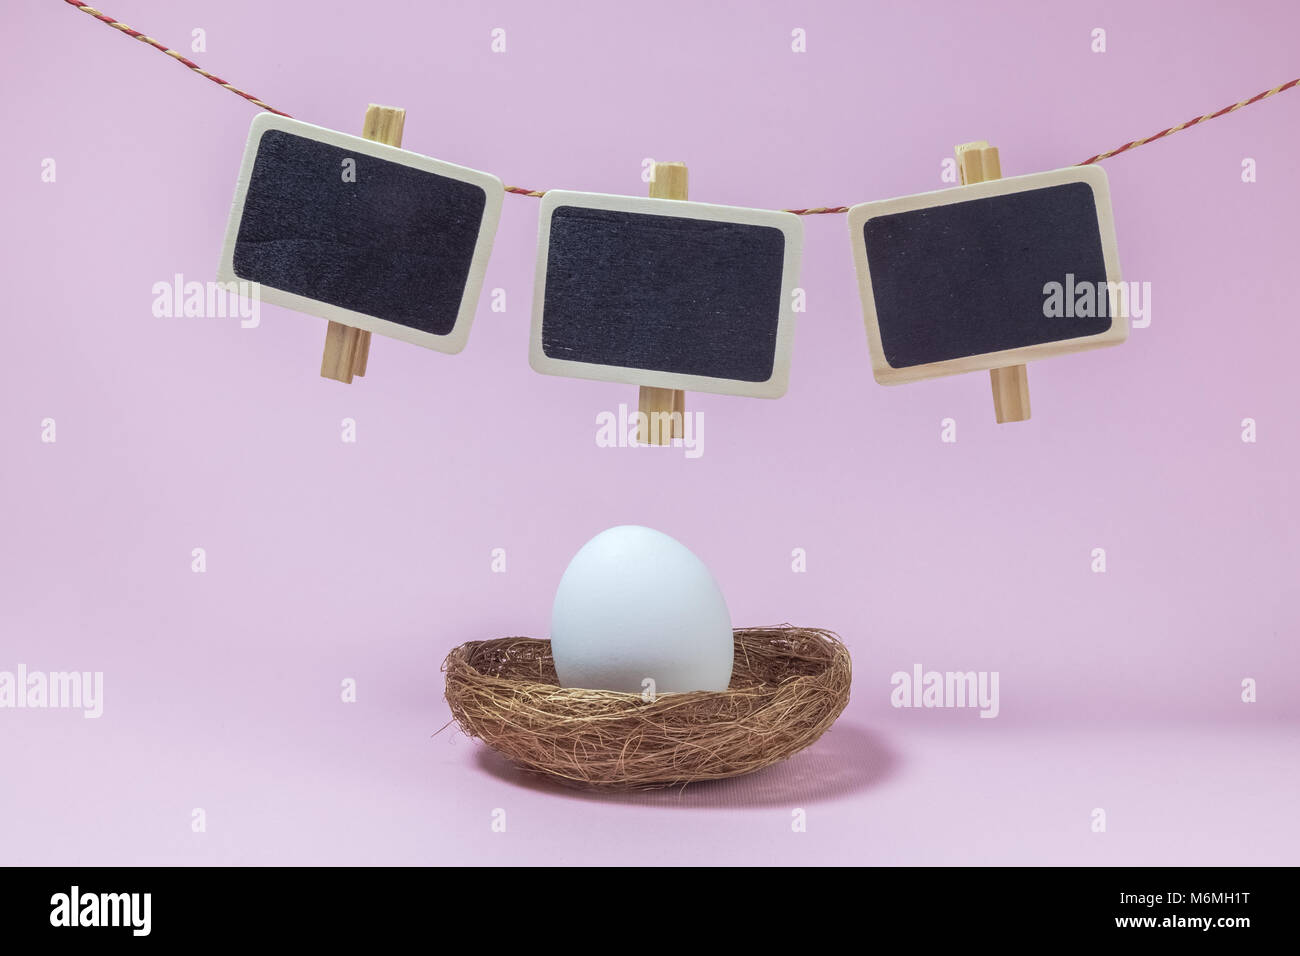 White egg in nest and clothespins with small blackboards hanging above against pastel pink background minimal easter - Stock Image